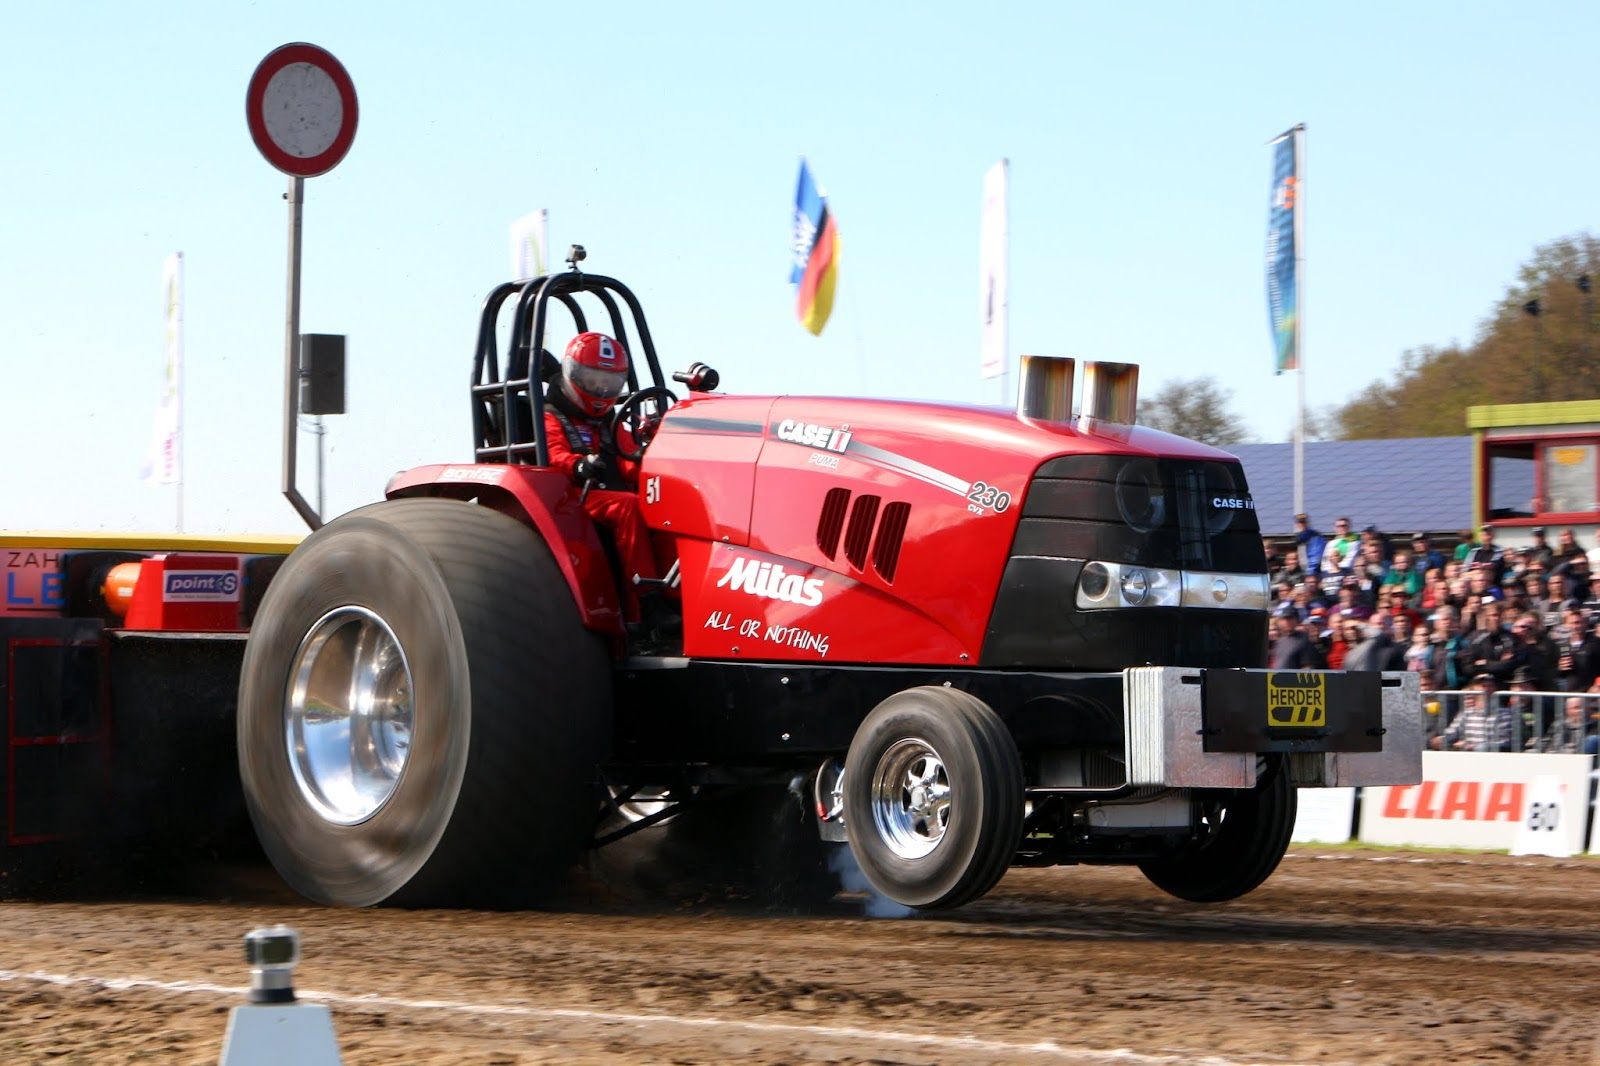 Ih Super Stock Pulling : Tractor pulling news pullingworld mitas all or